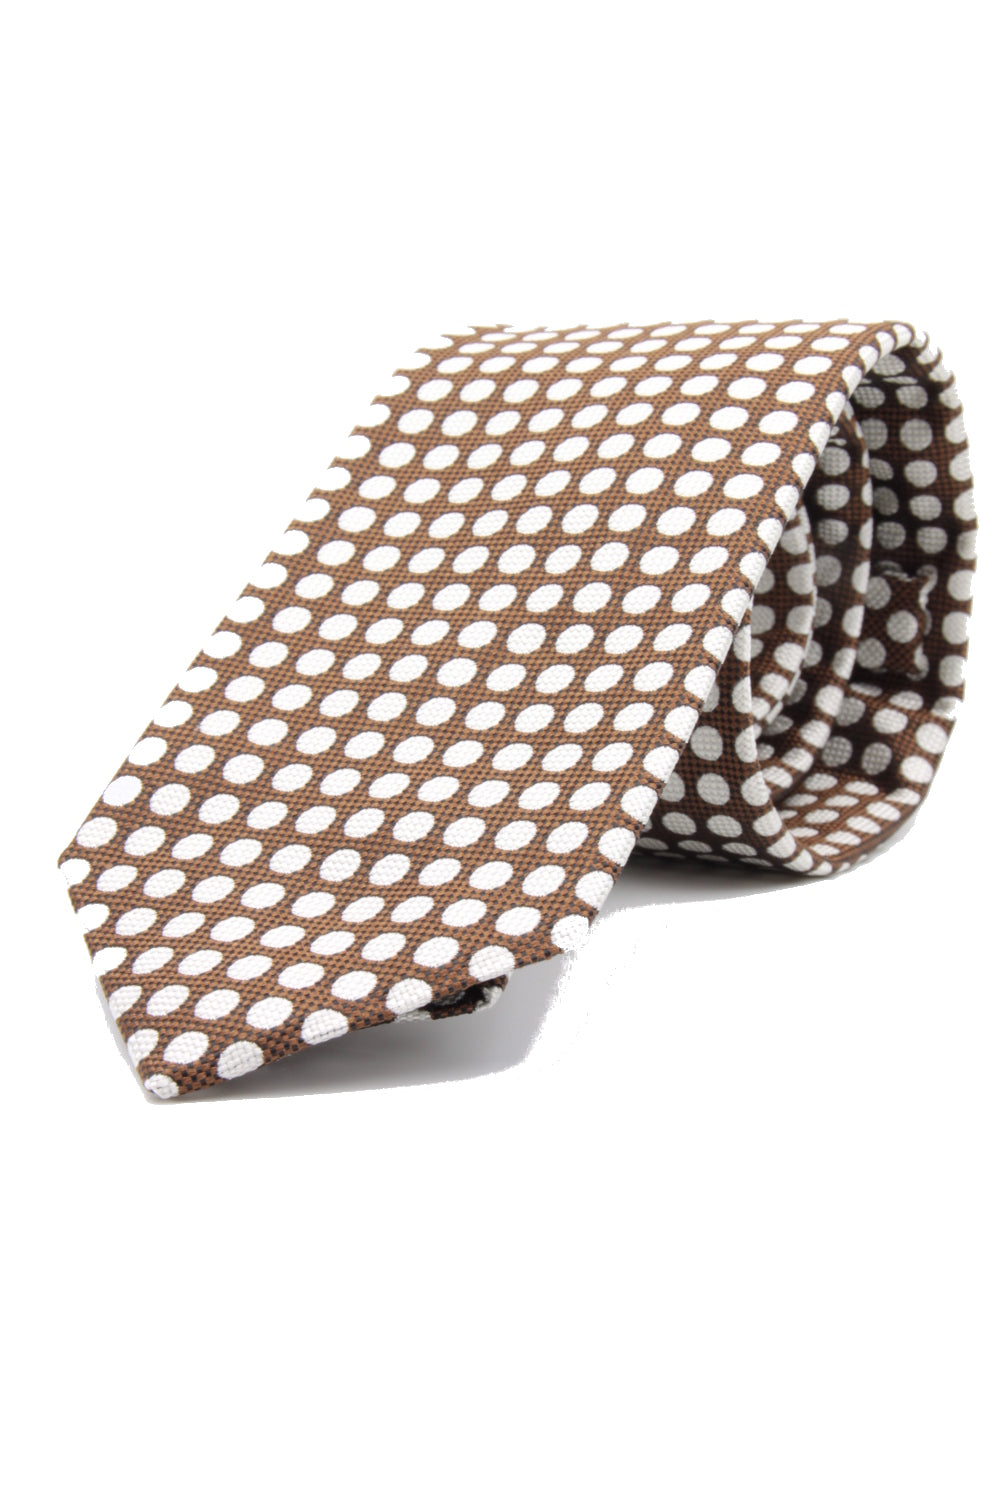 drake's Churchil's  spot brown and white tie